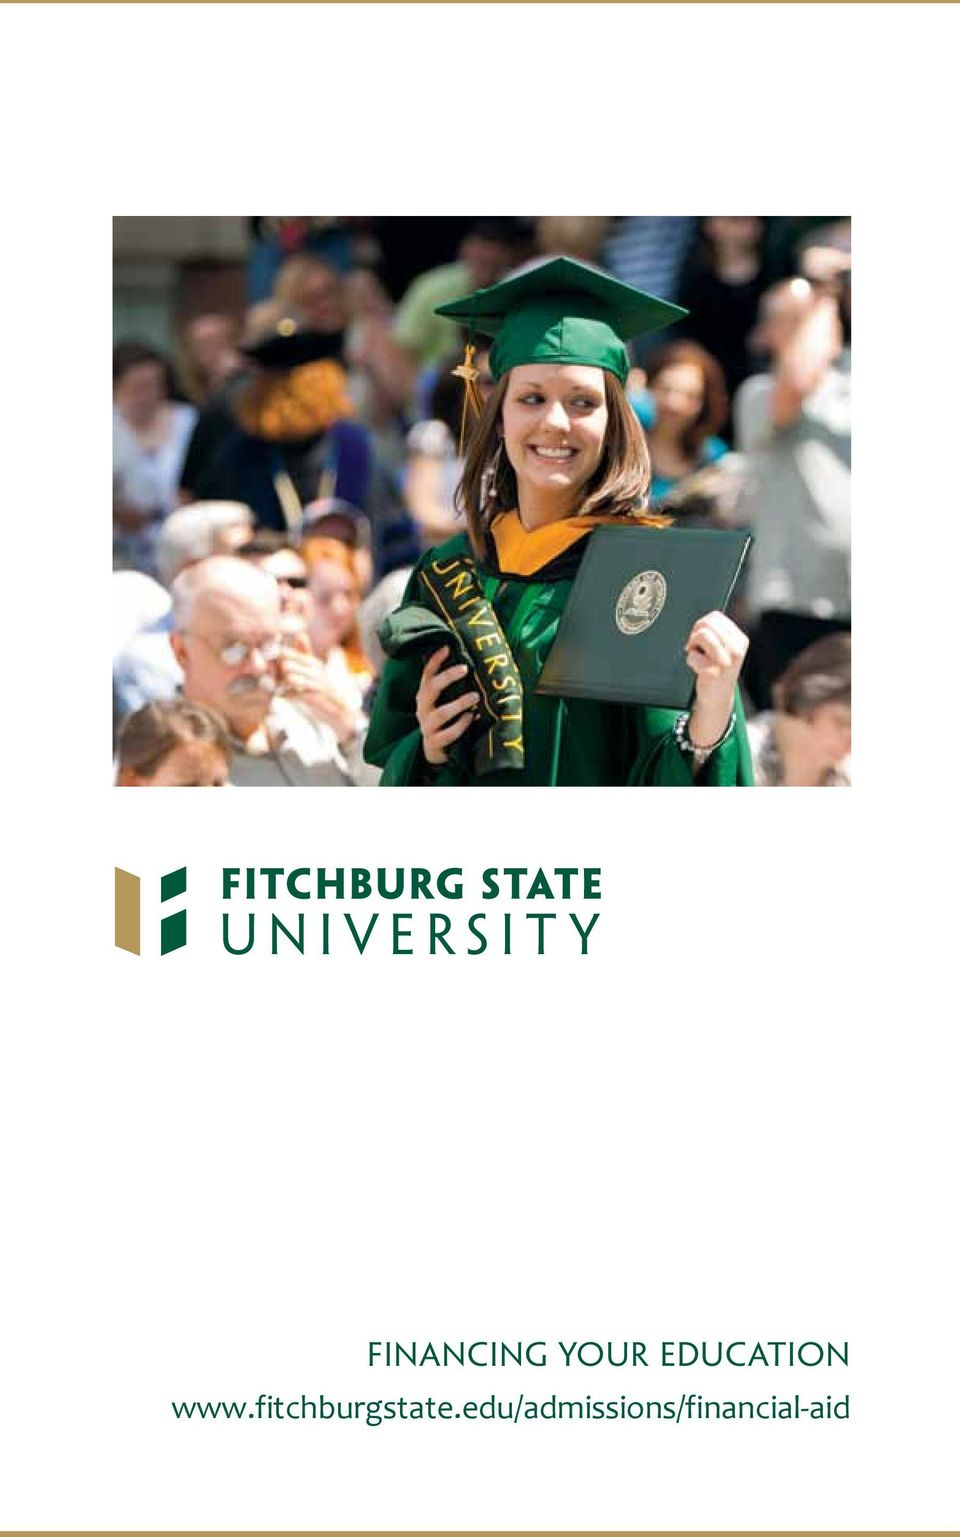 fitchburgstate.